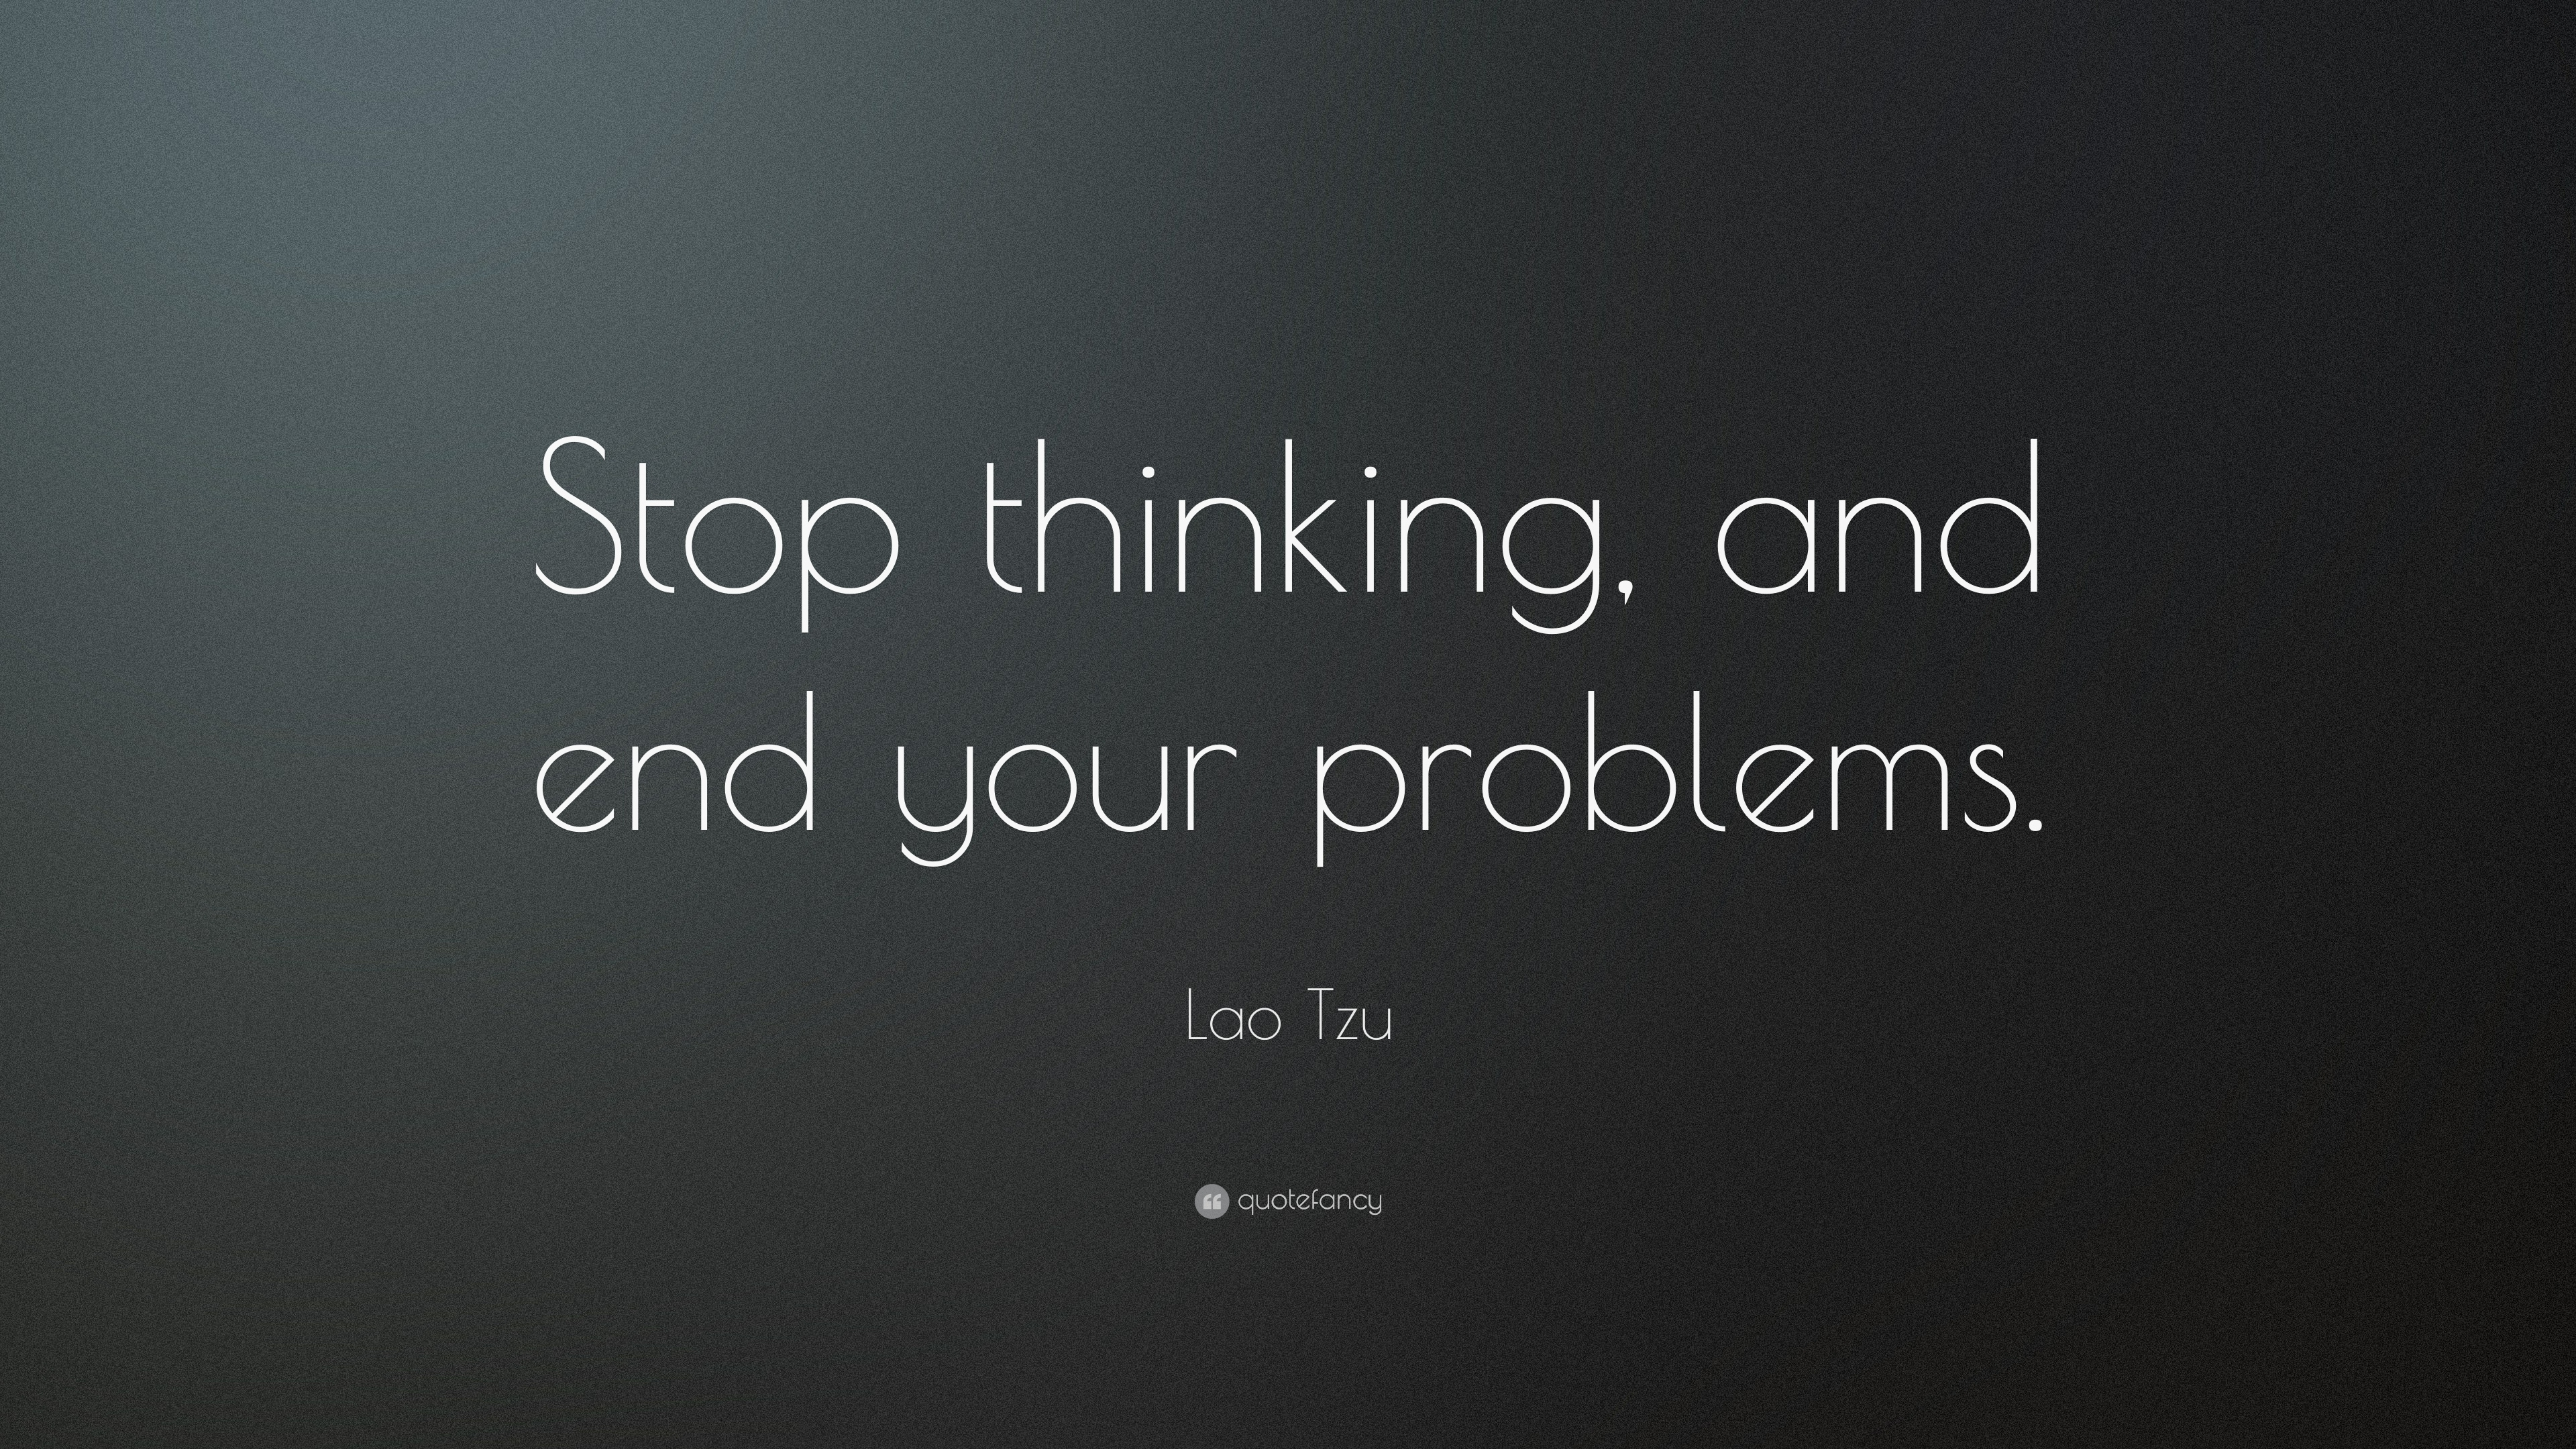 Marilyn monroe computer wallpapers desktop backgrounds 1468x955 -  15 Lao Tzu Quote Stop Thinking And End Your Problems 7